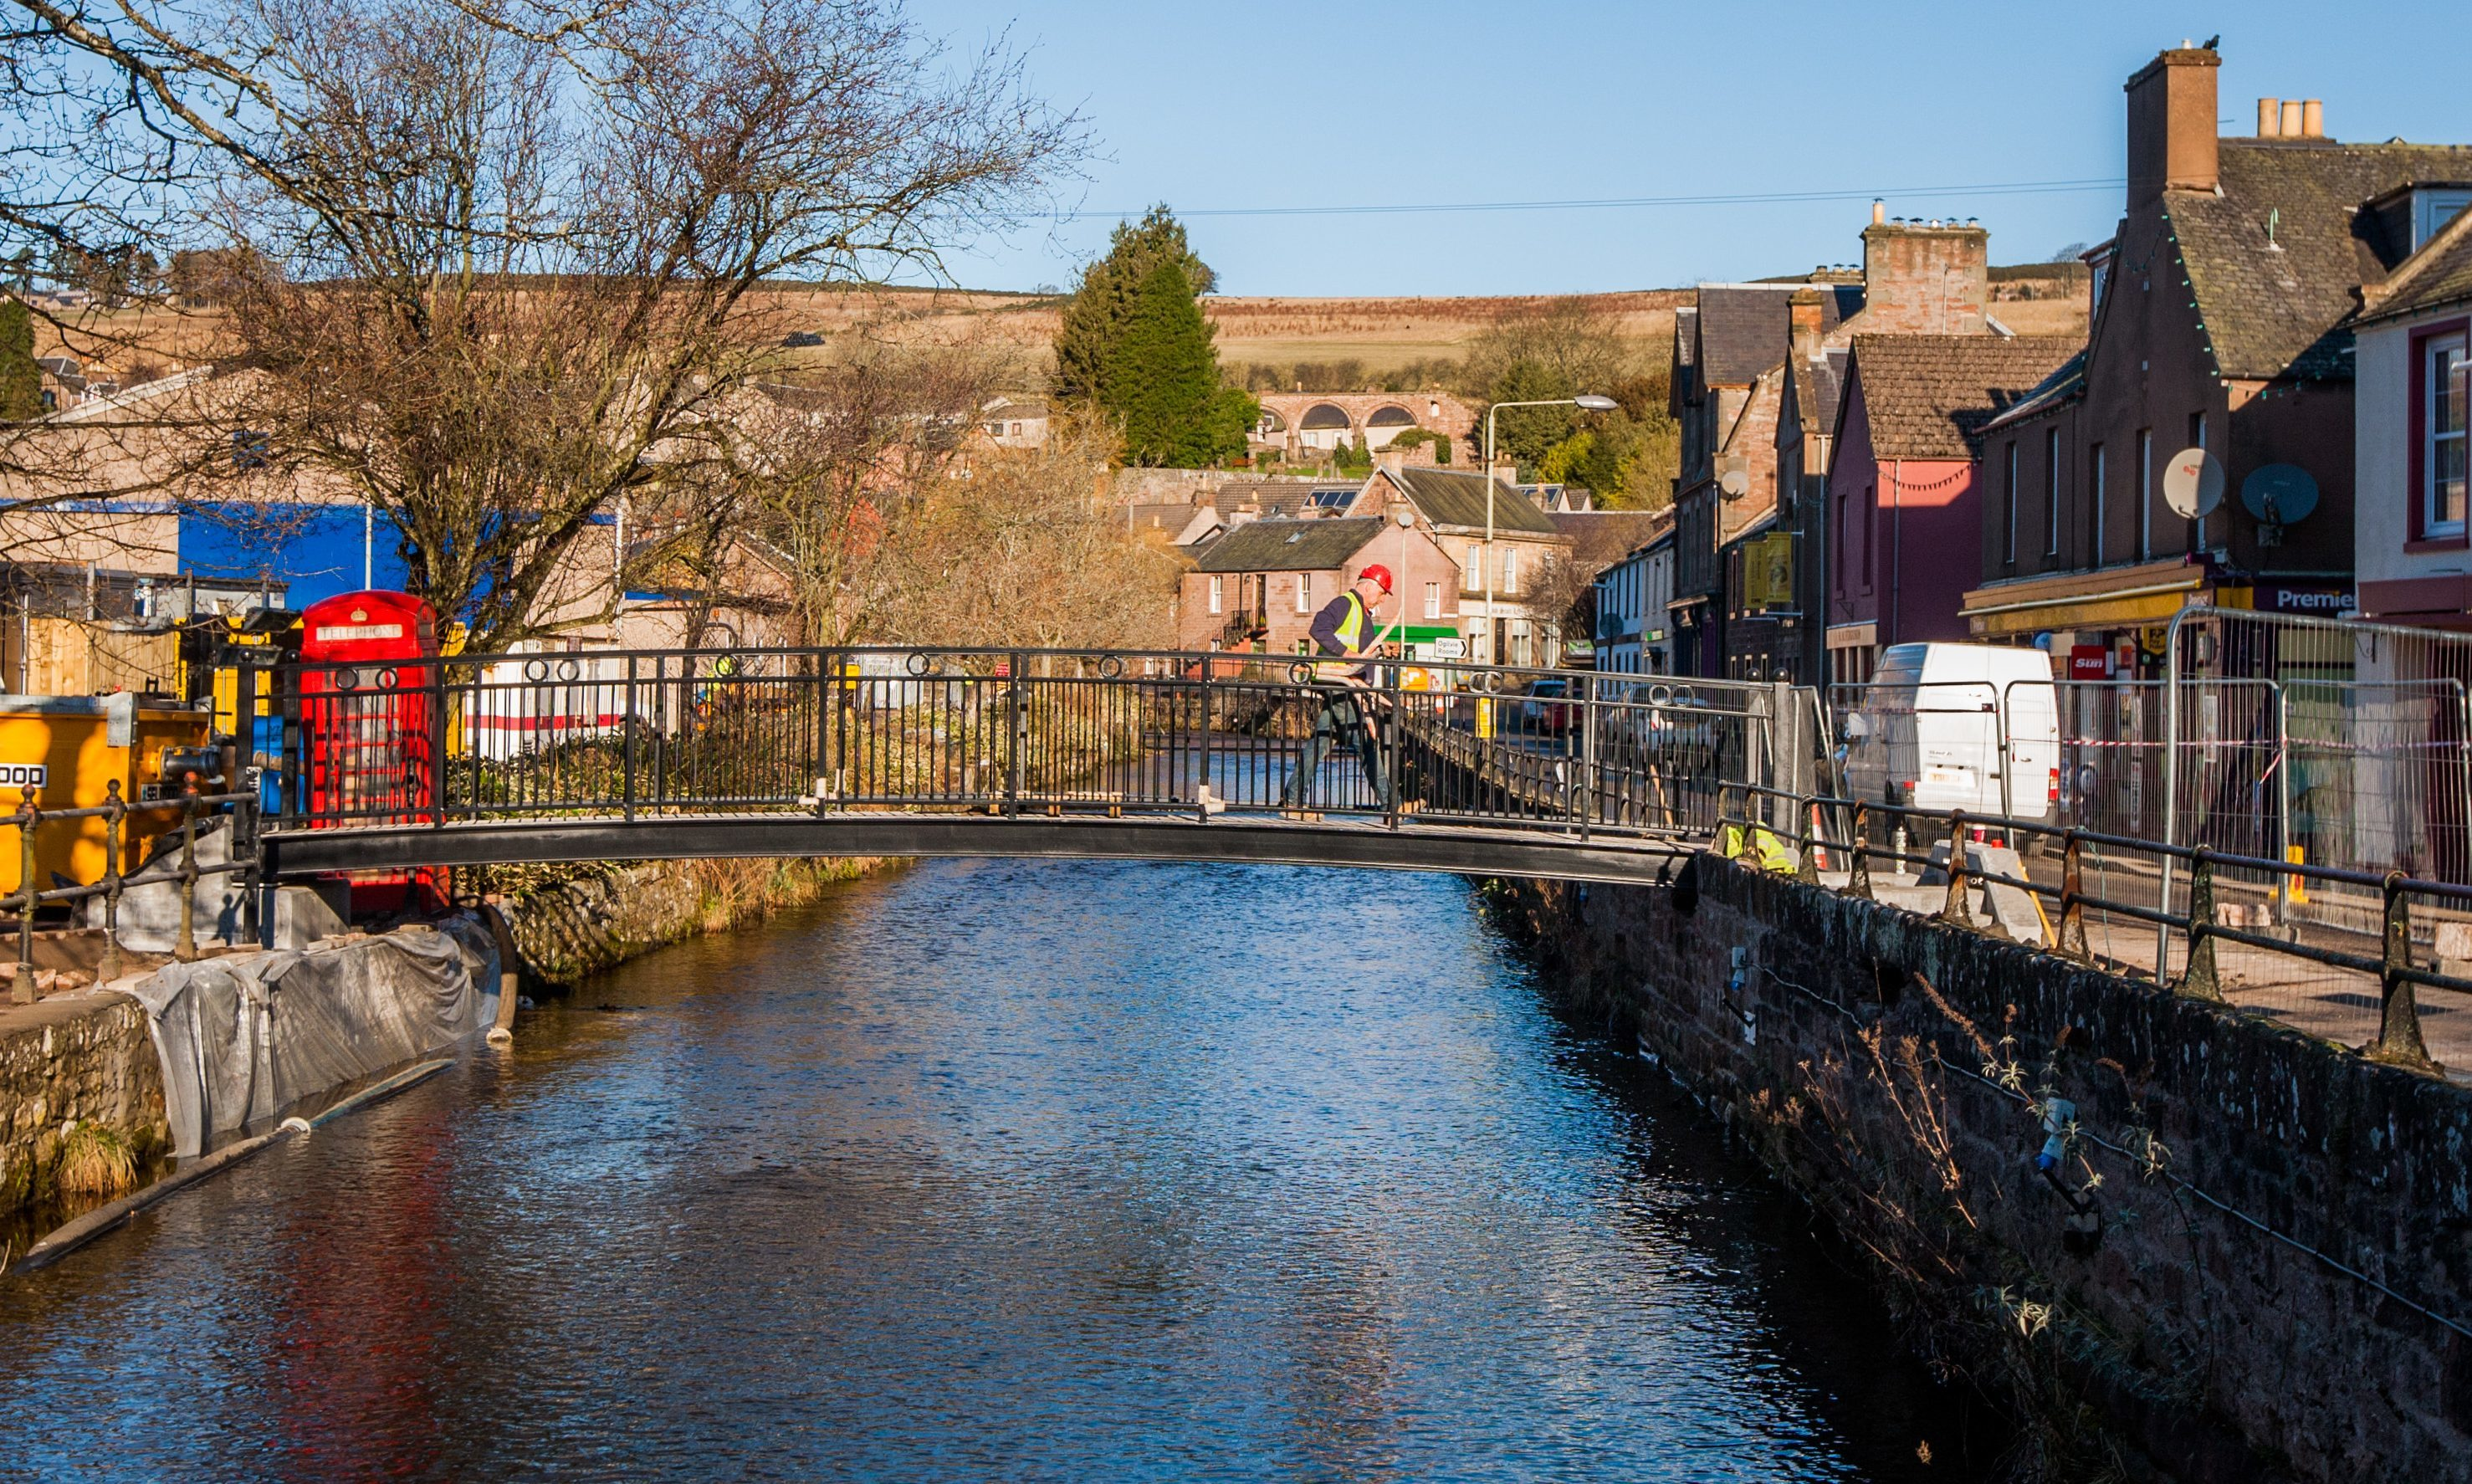 New bridges in place over Alyth Burn.  Picture shows workmen using one of the new bridges.